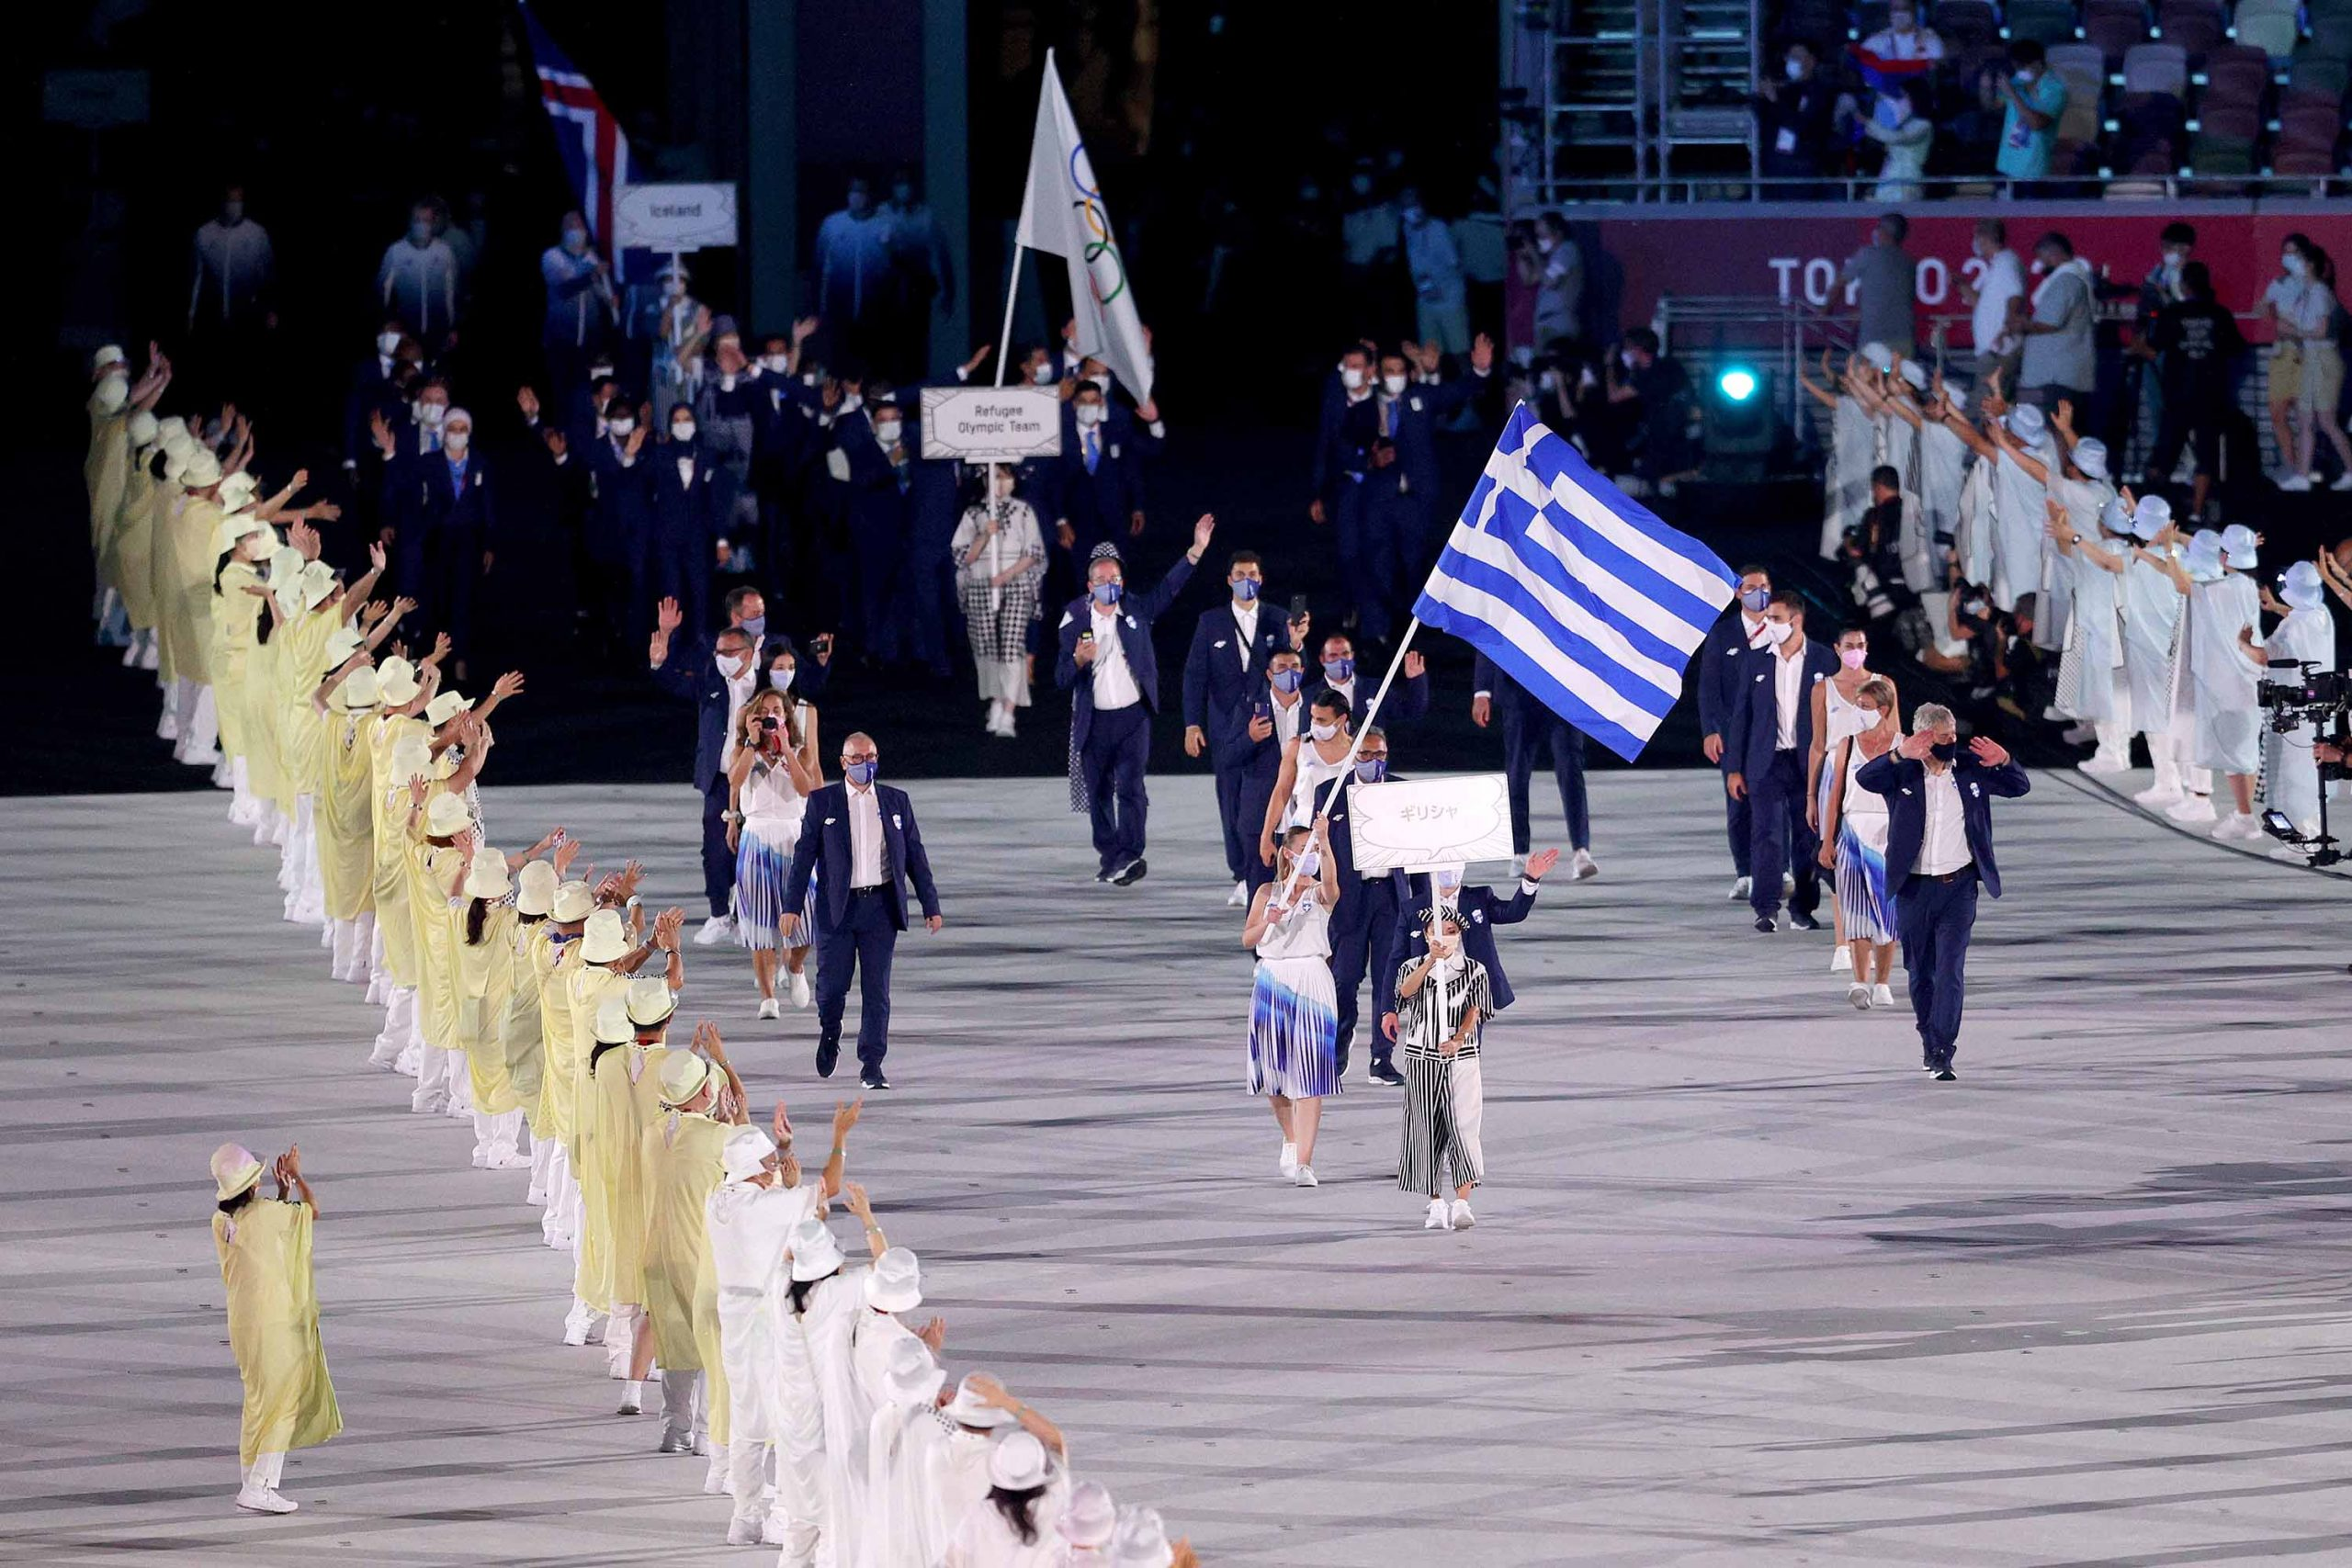 The parade of athletes is underway at the Tokyo 2020 Opening Ceremony